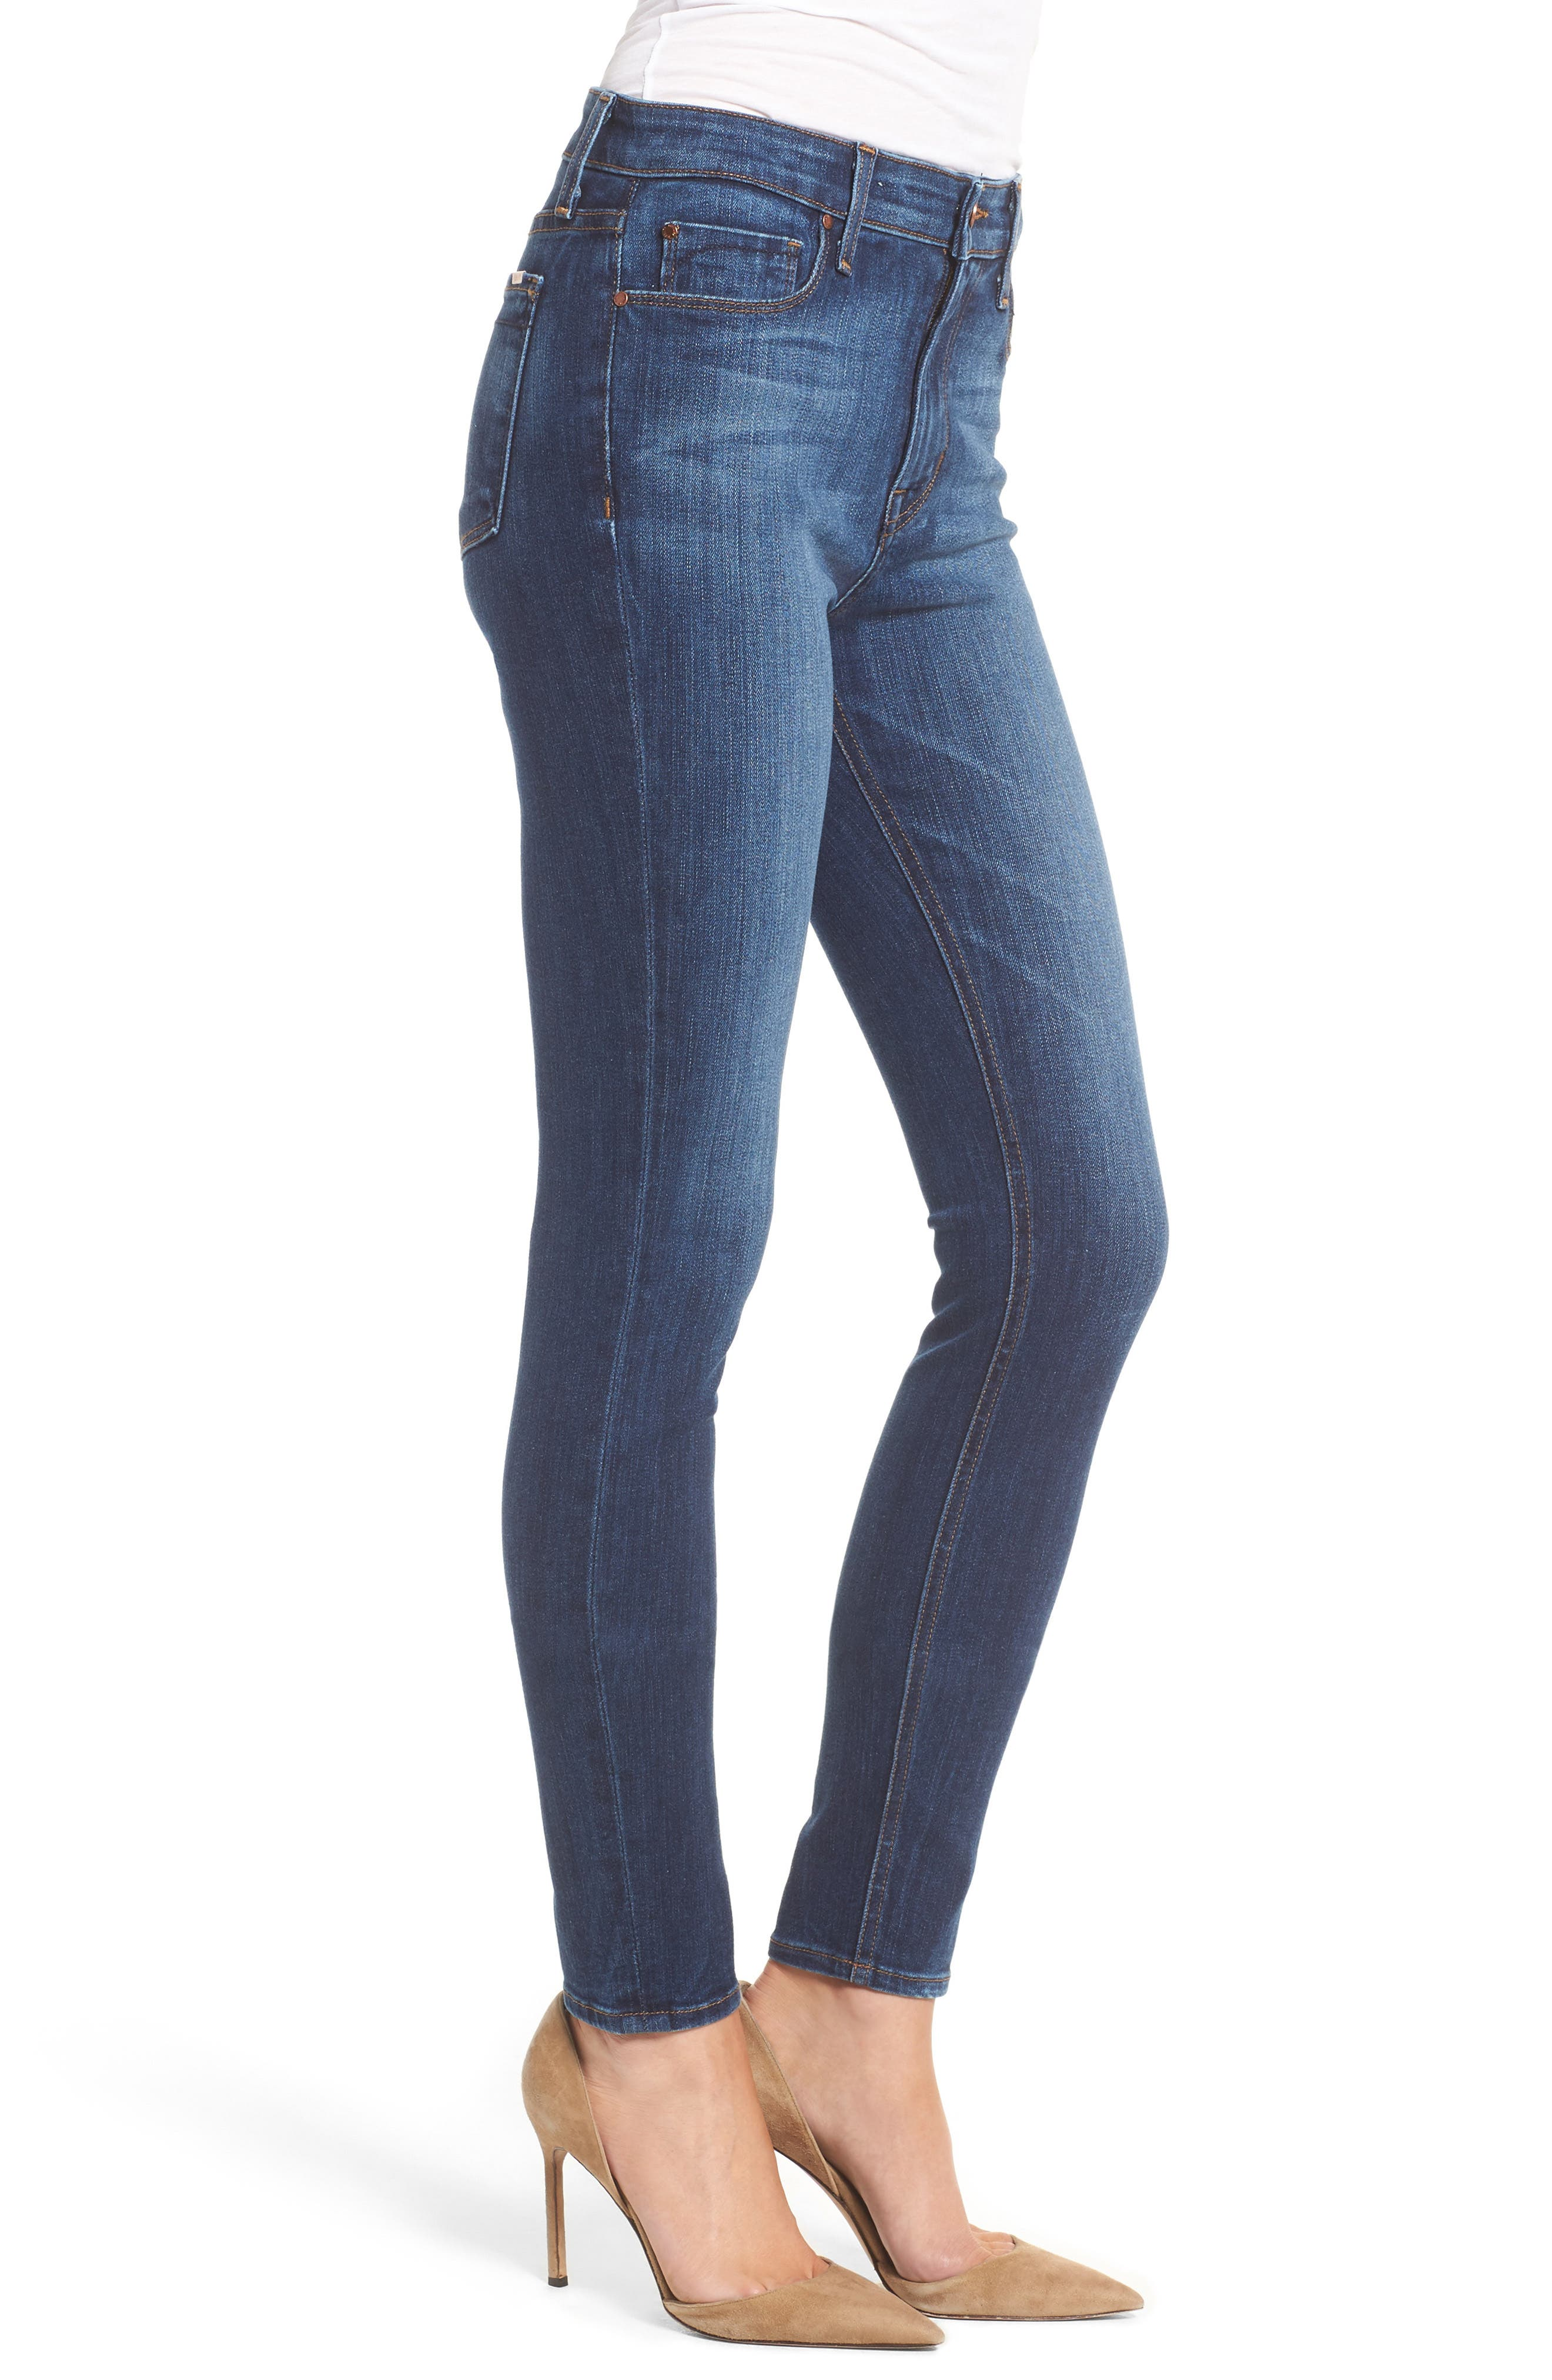 Gwen High Waist Skinny Jeans,                             Alternate thumbnail 3, color,                             Liverpool